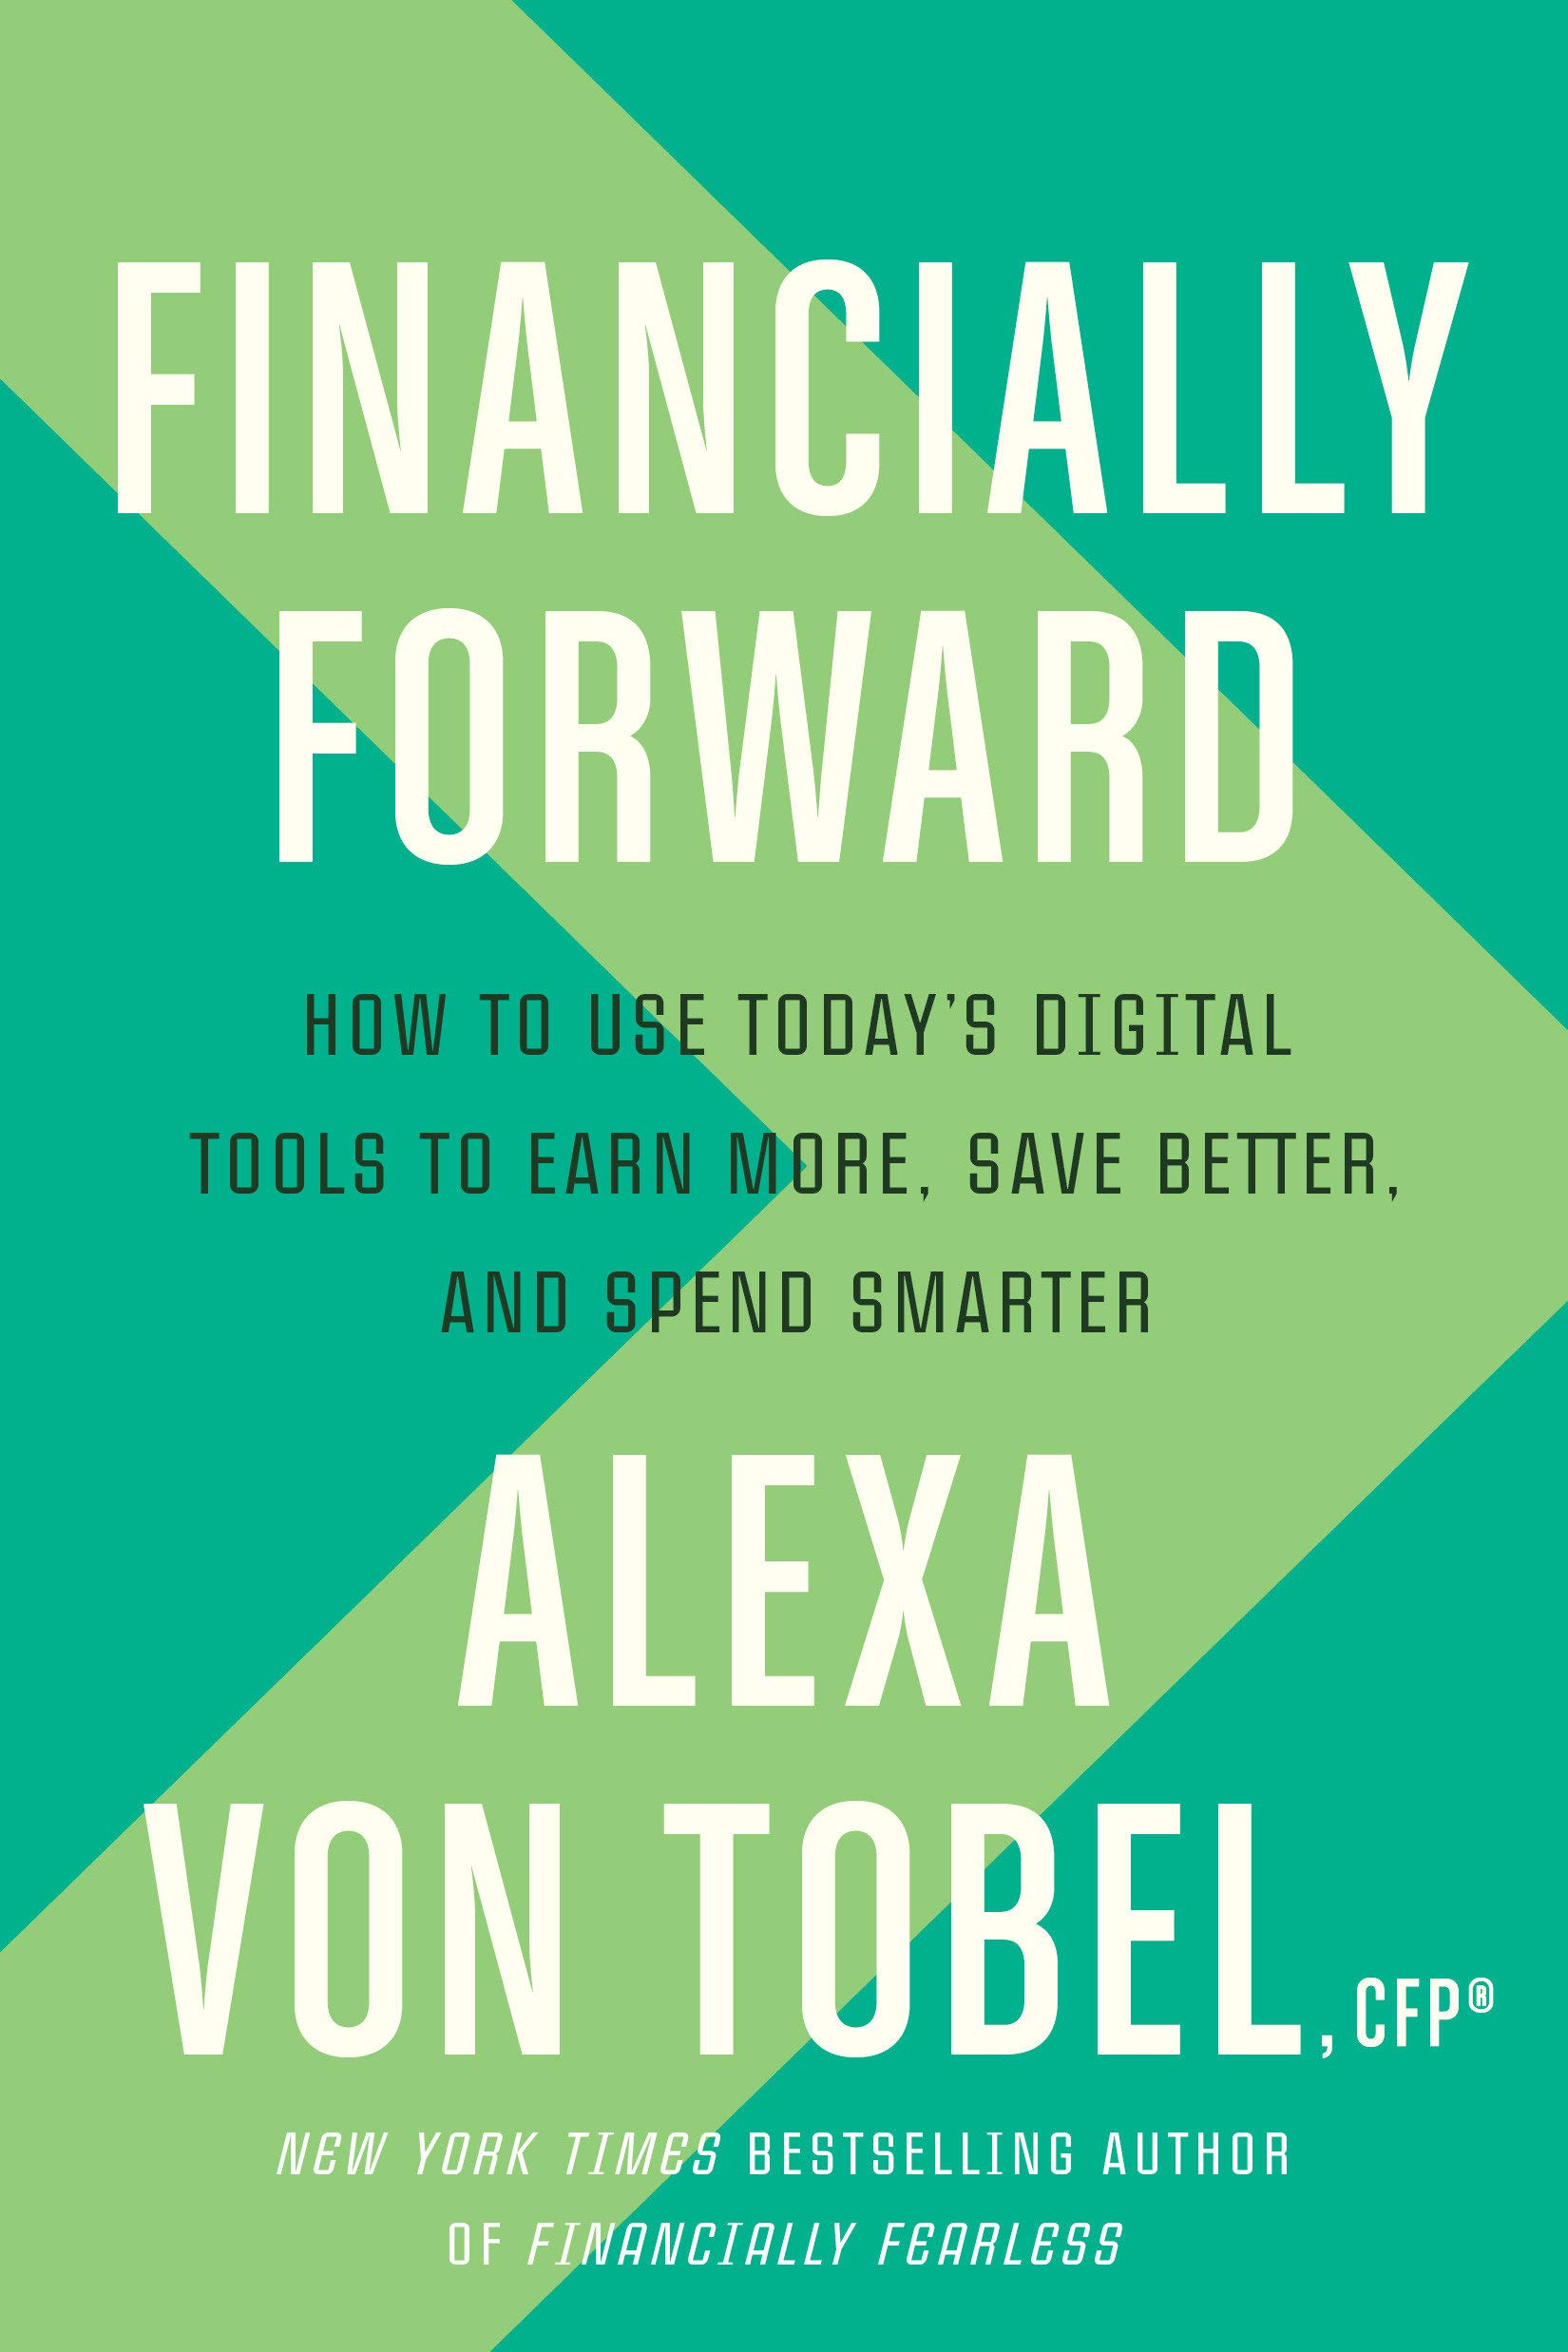 Financially Forward: How to Use Today's Digital Tools to Earn More, Save Better, and Spend Smarter